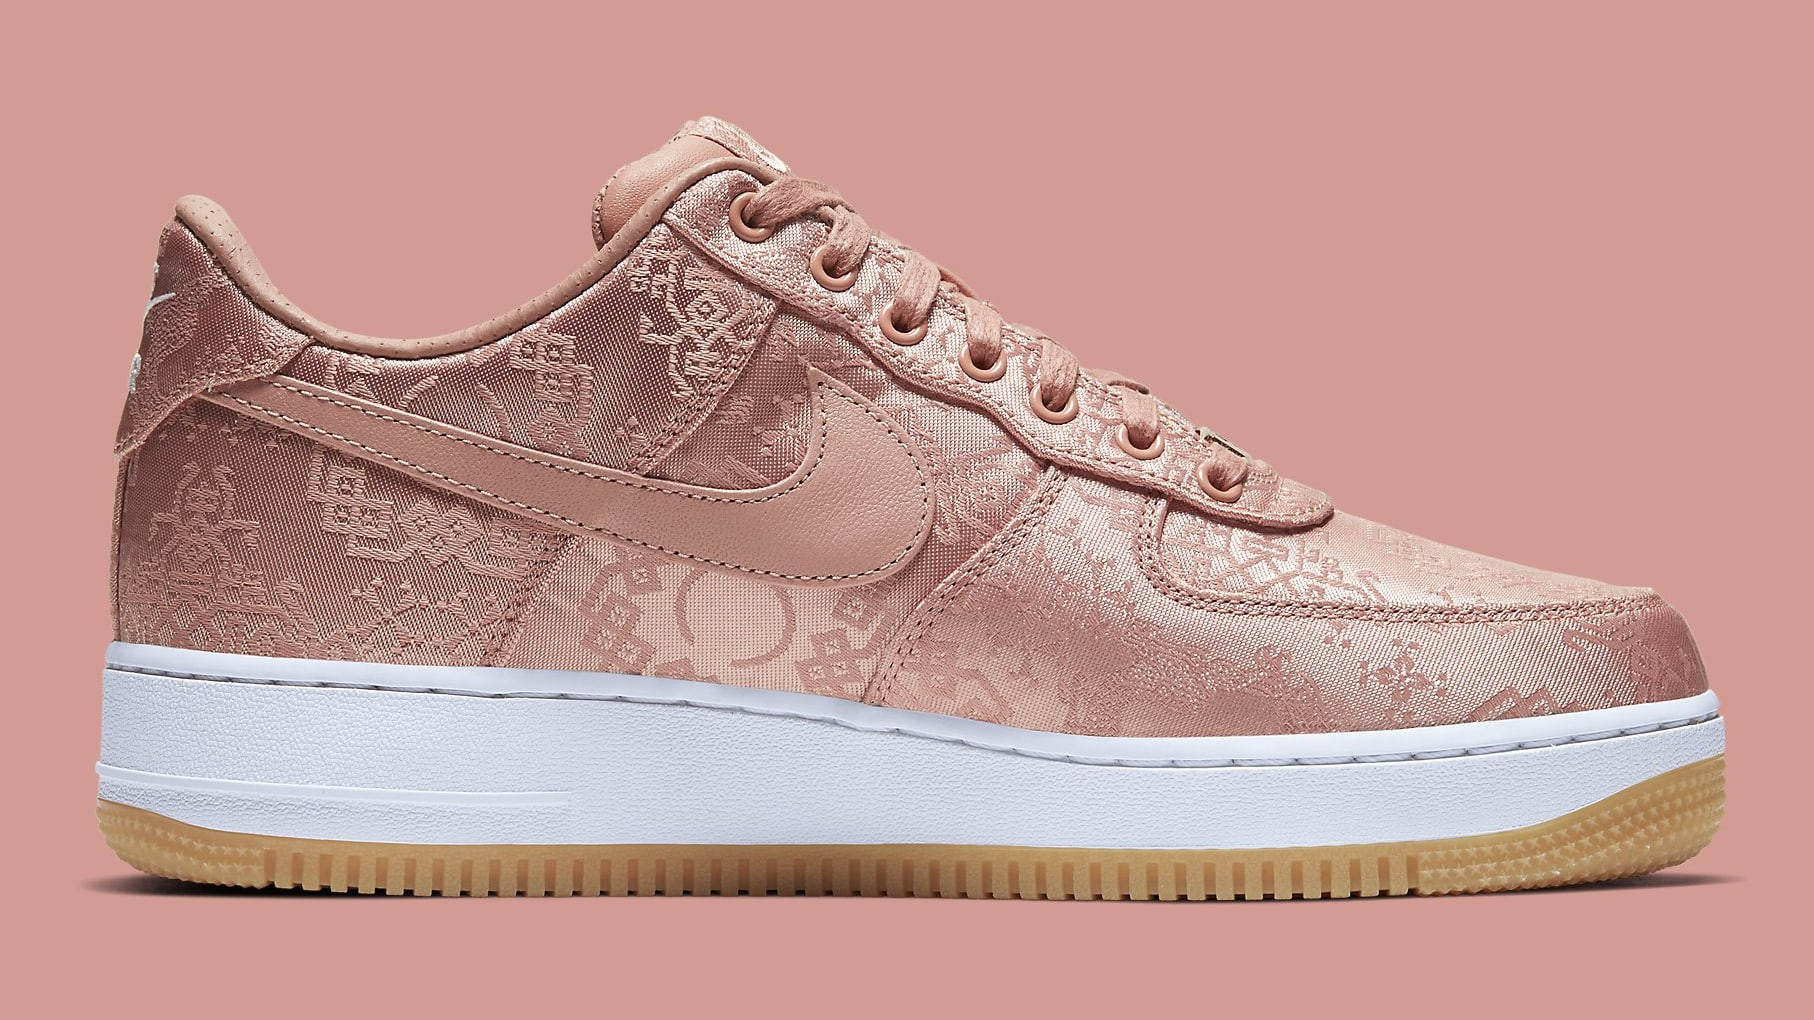 Clot x Nike Air Force 1 Rose Gold Release Date CJ5290-600 Medial